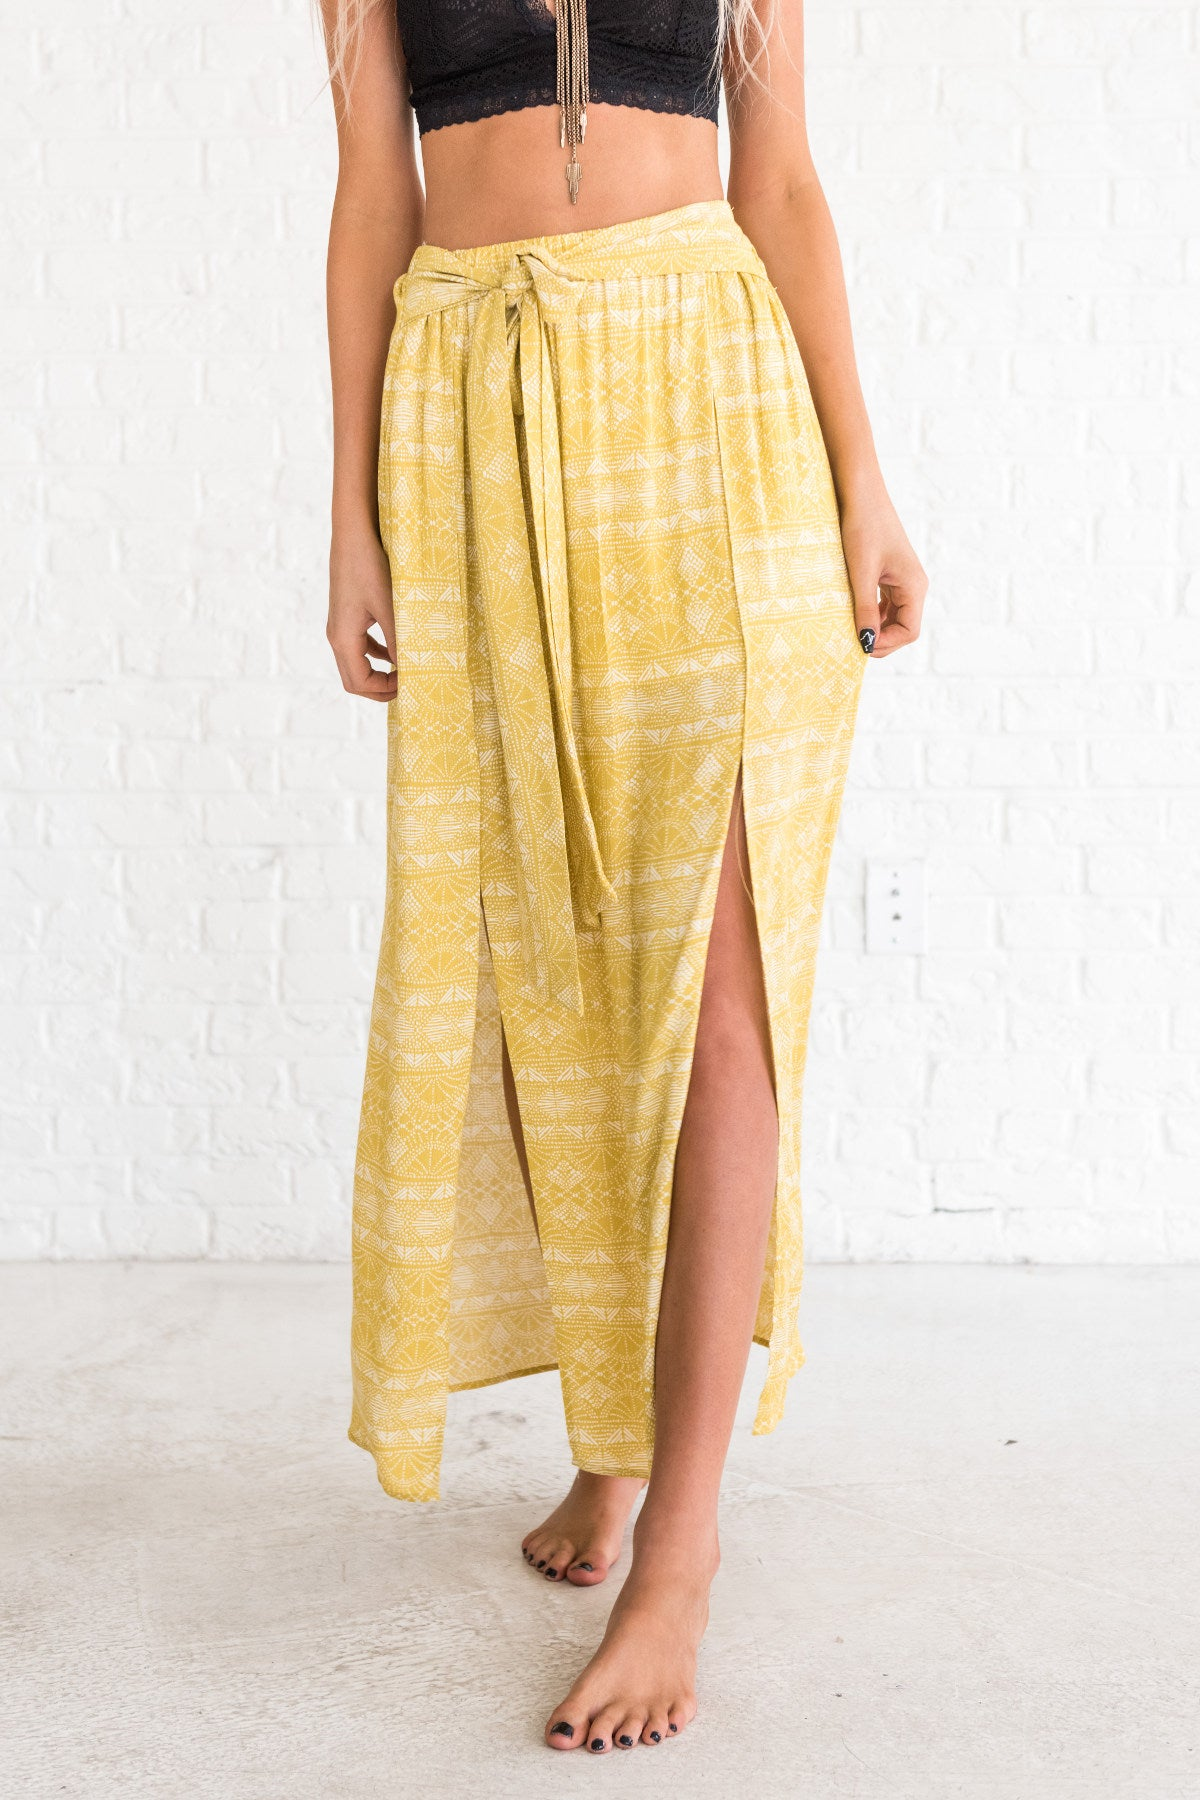 yellow boutique skirt with tribal print